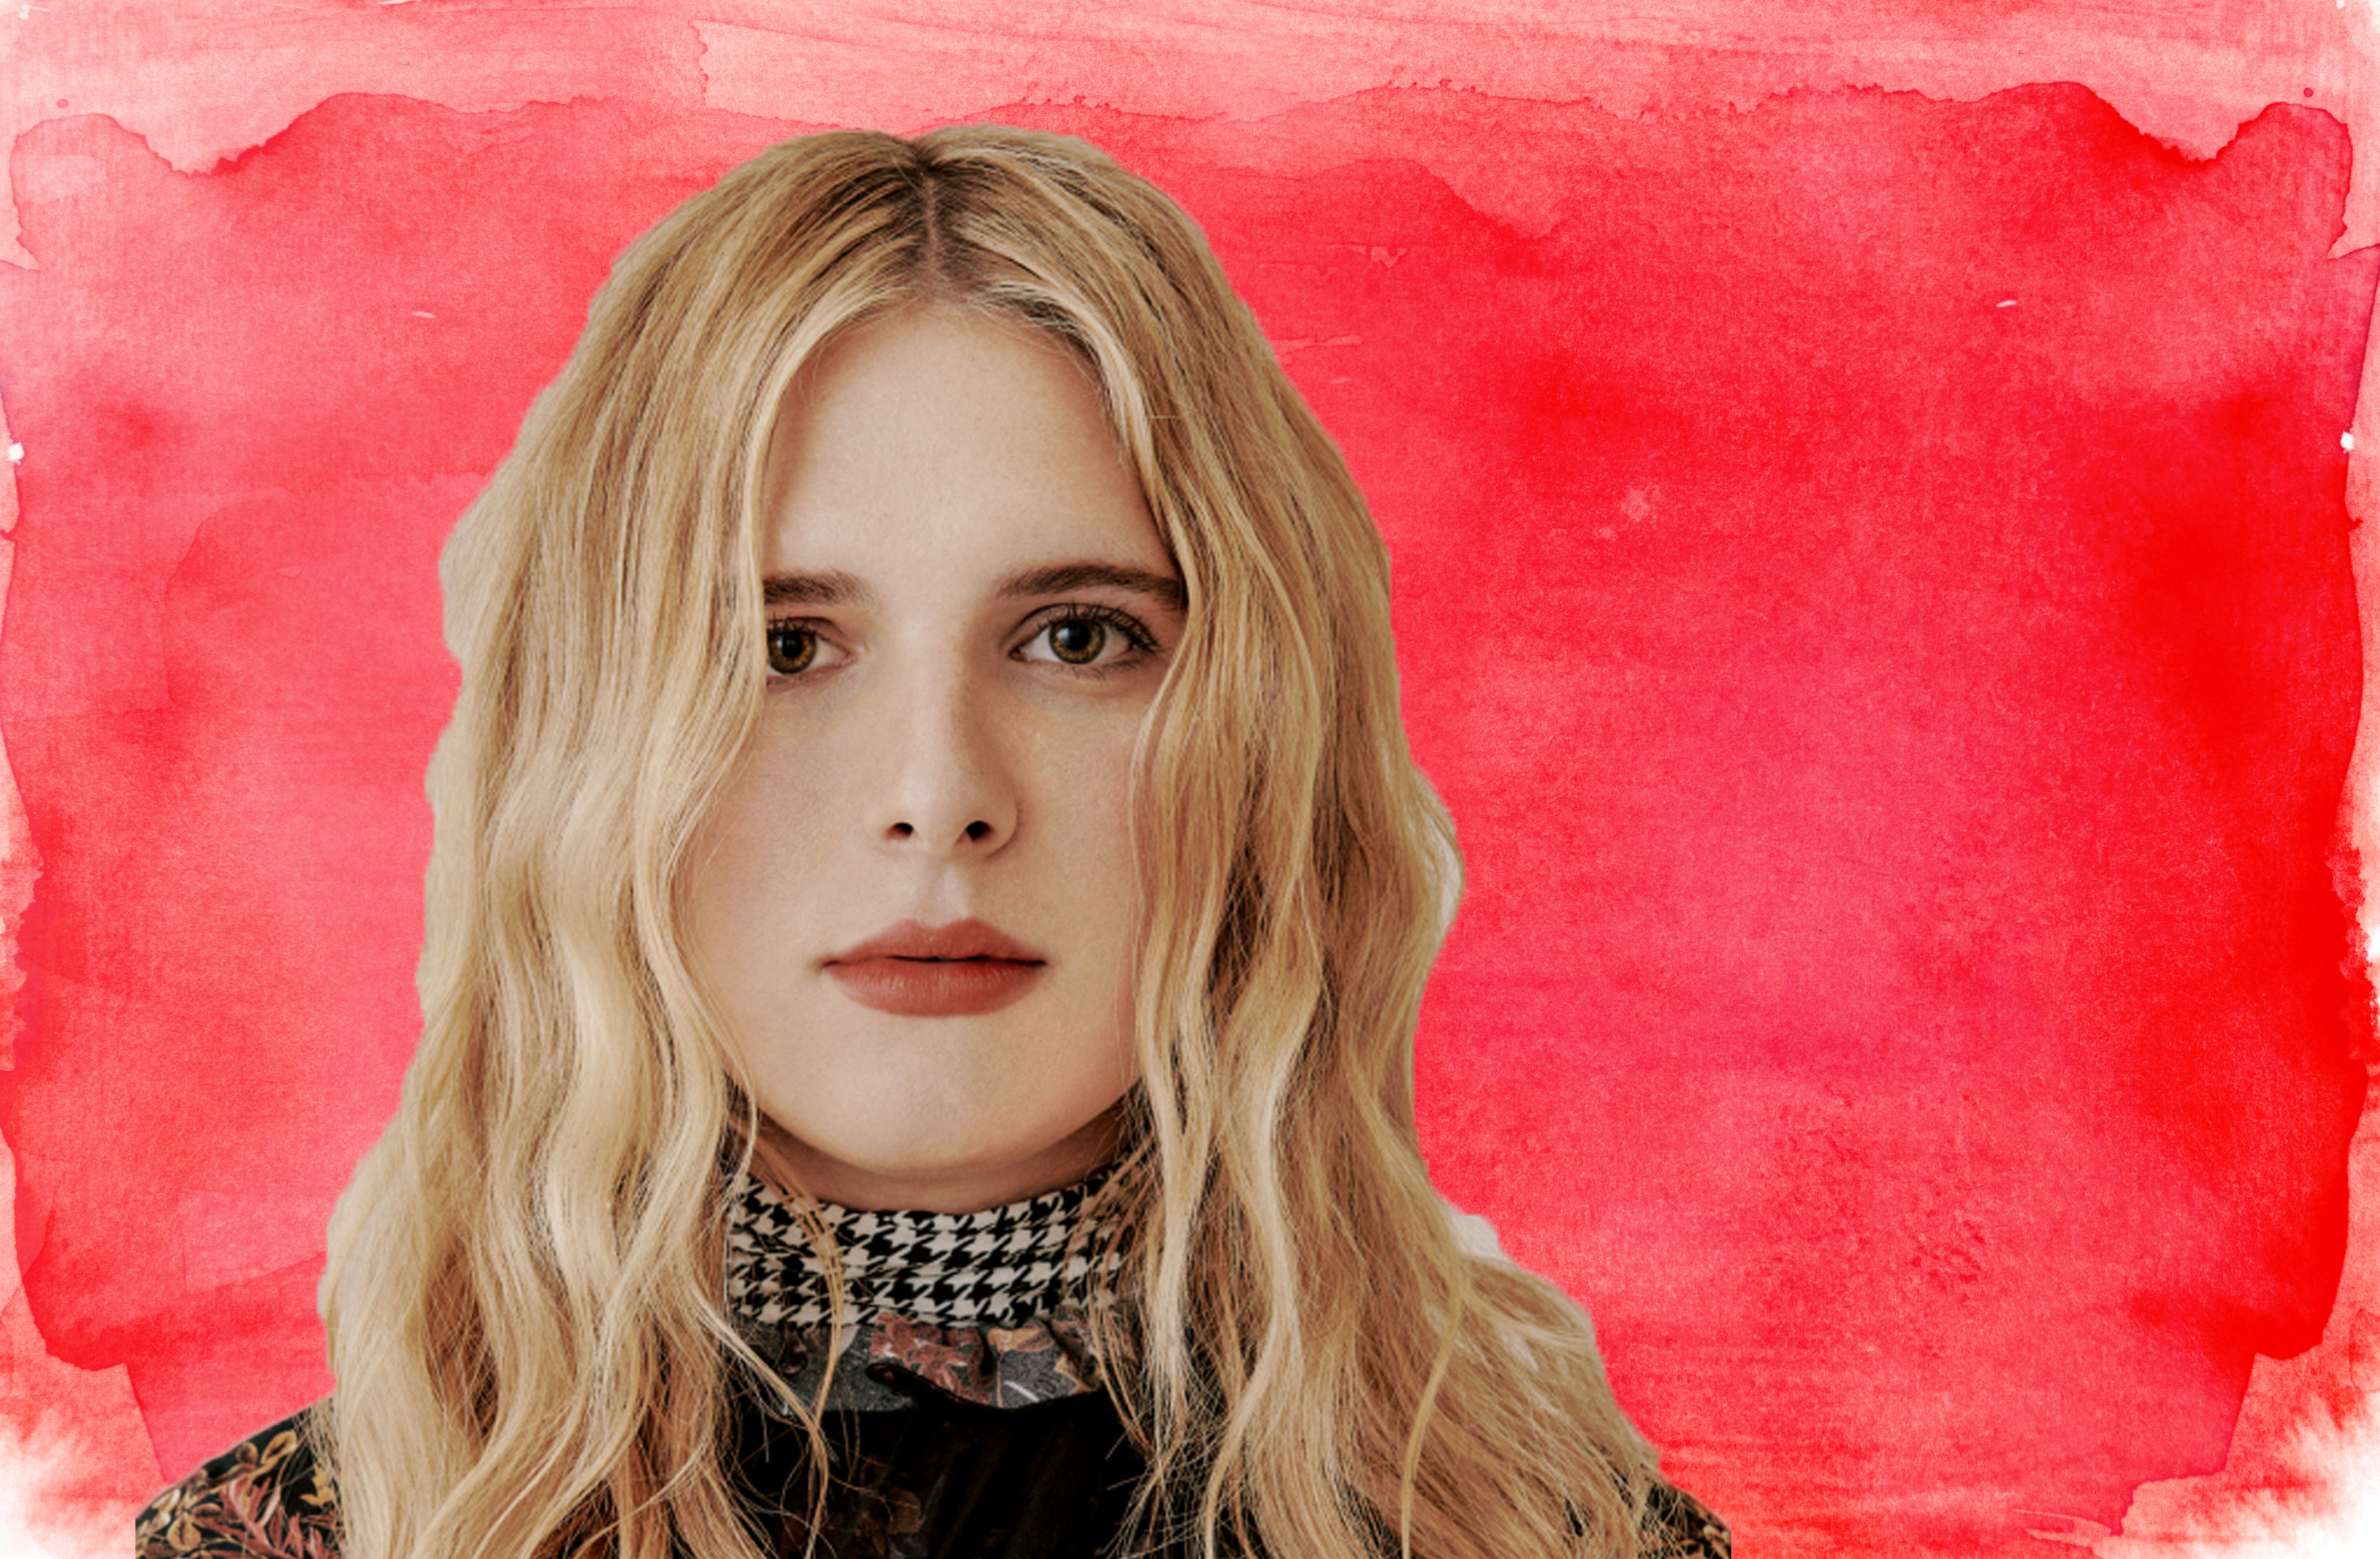 18 Things to Know About Jewish Actress Hari Nef - Alma